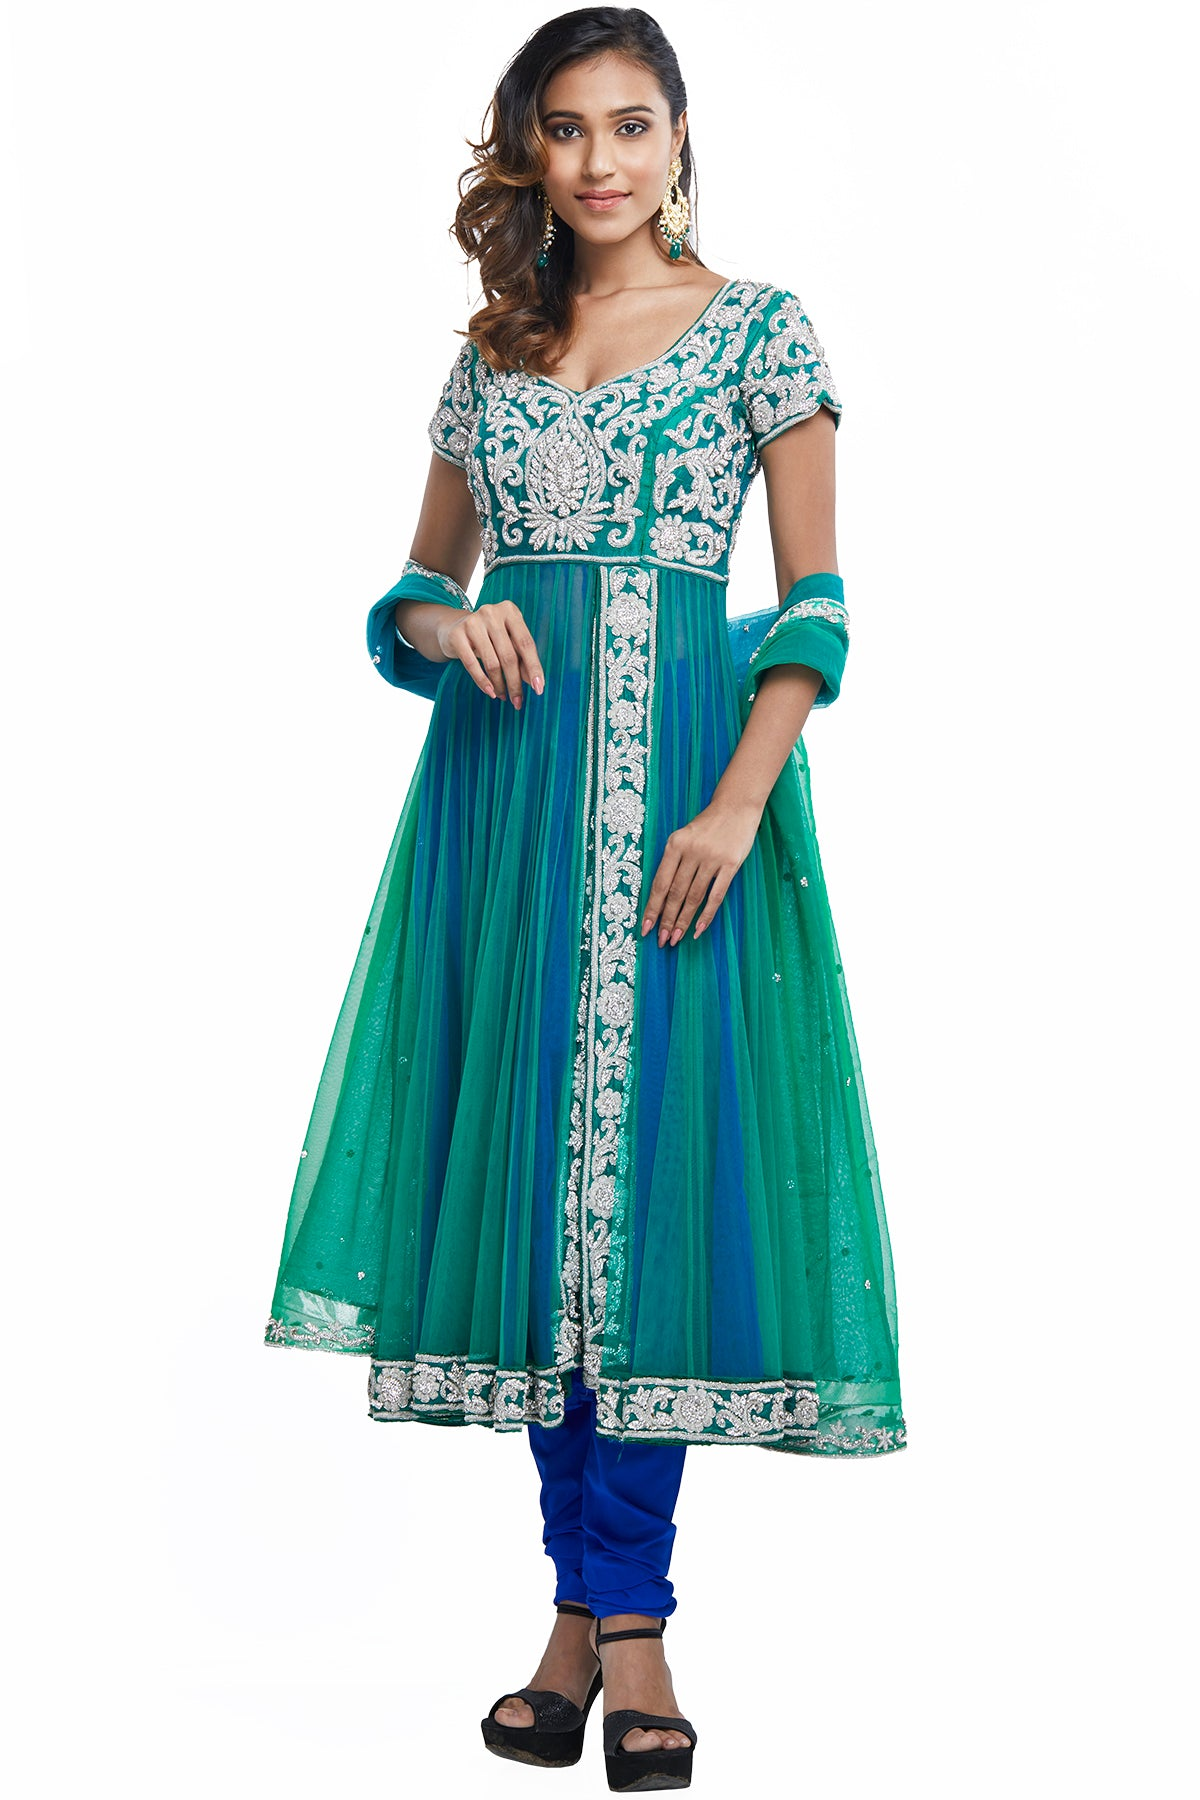 Why do boring when you can have twice the fashion in our double layered Anarkali tailored in the gorgeous silhouette of green & blue net. The zardosi embroidery and studded stonework make this fit for your every festivity.